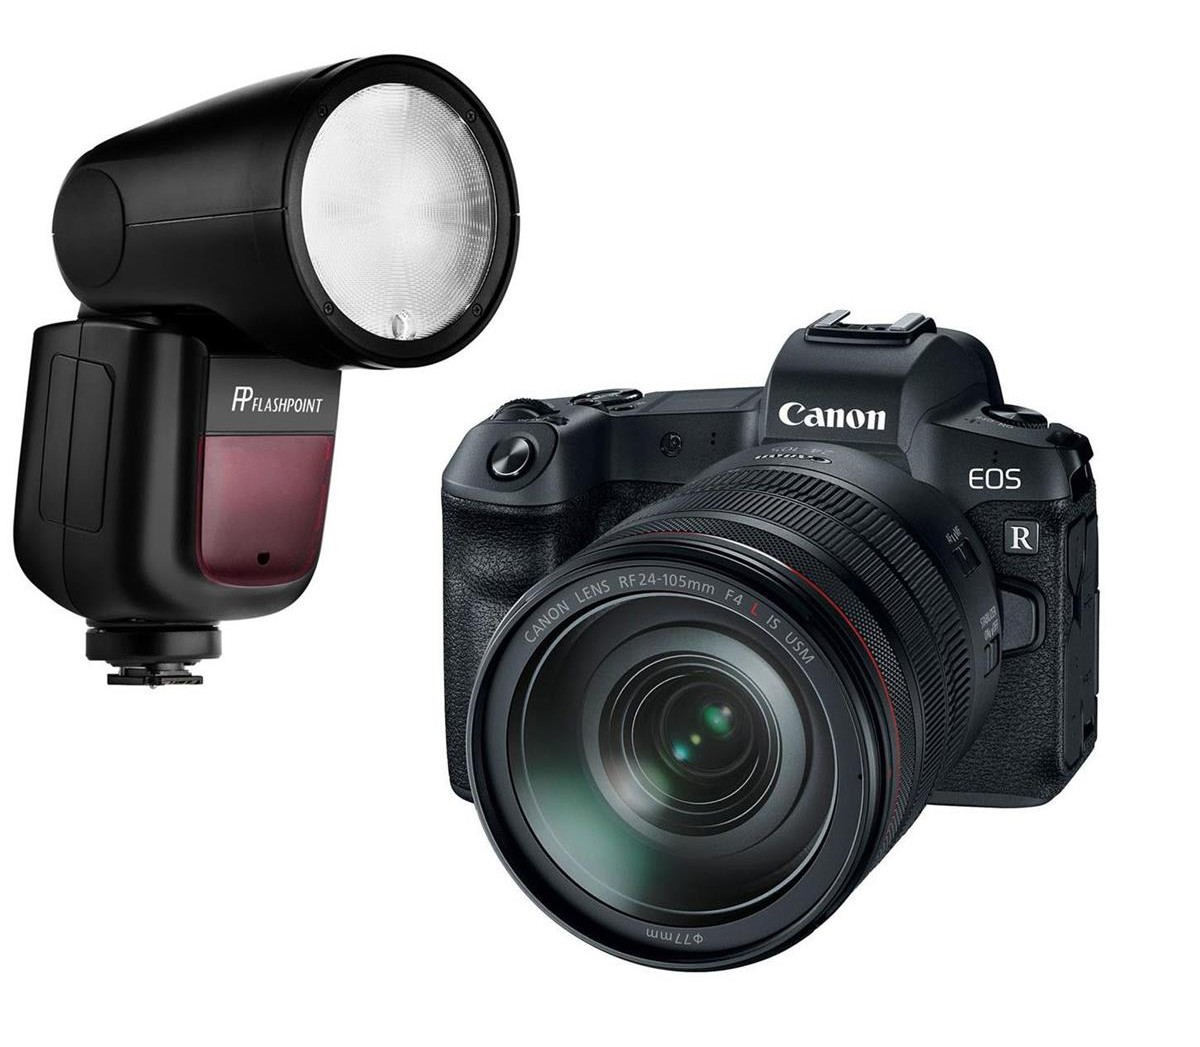 canon eos r holiday sale image